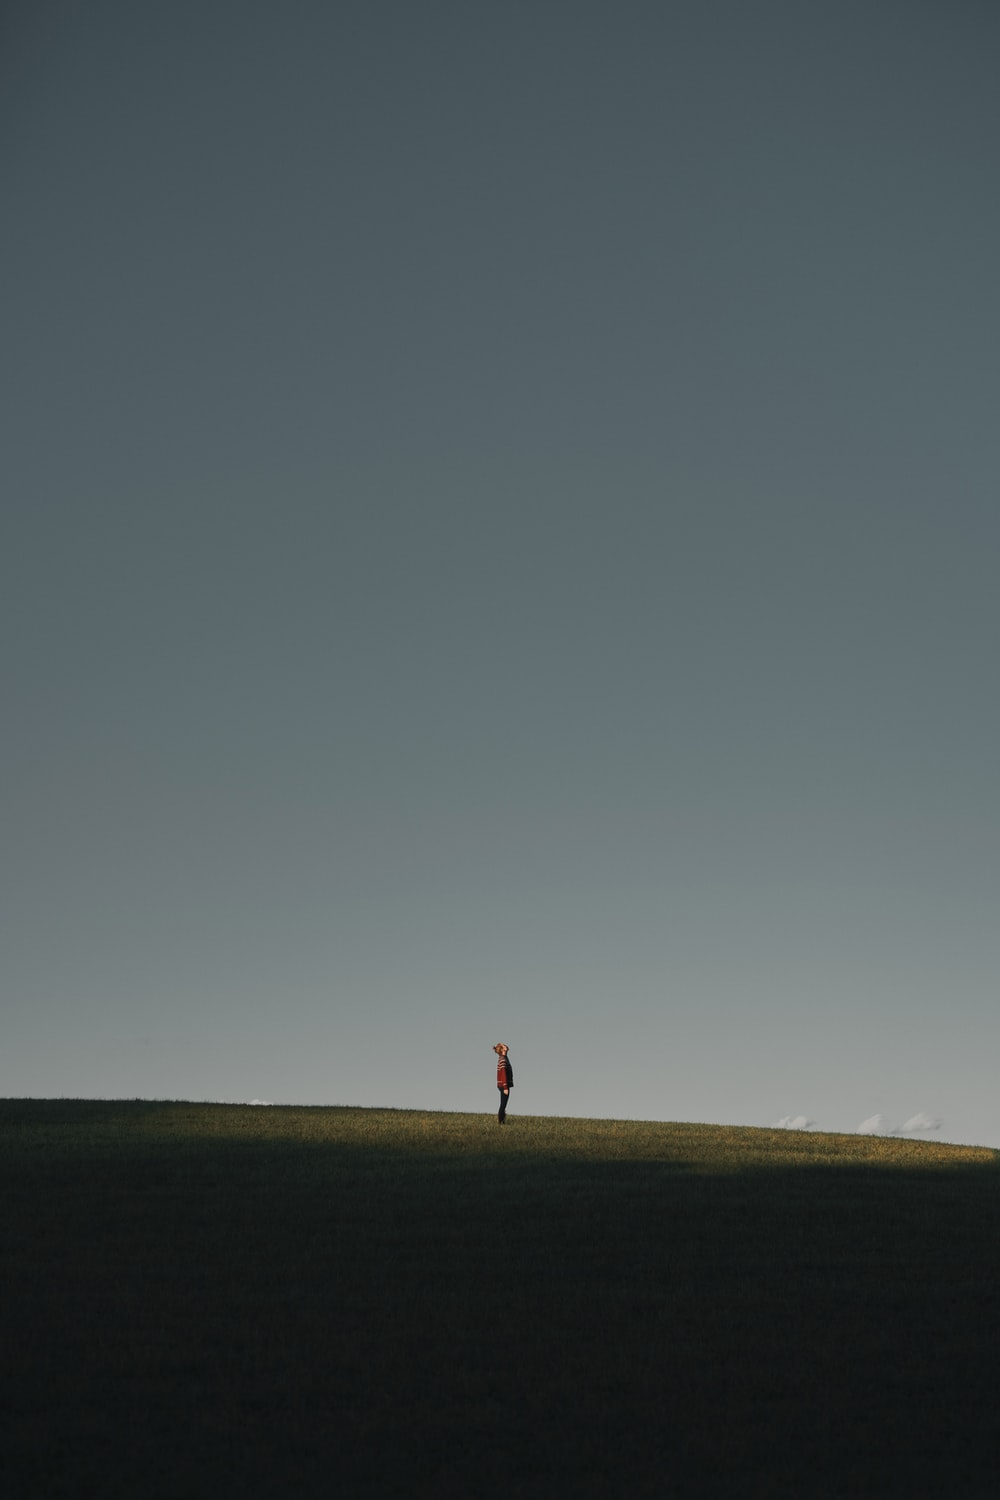 person in red shirt walking on brown field under gray sky during daytime